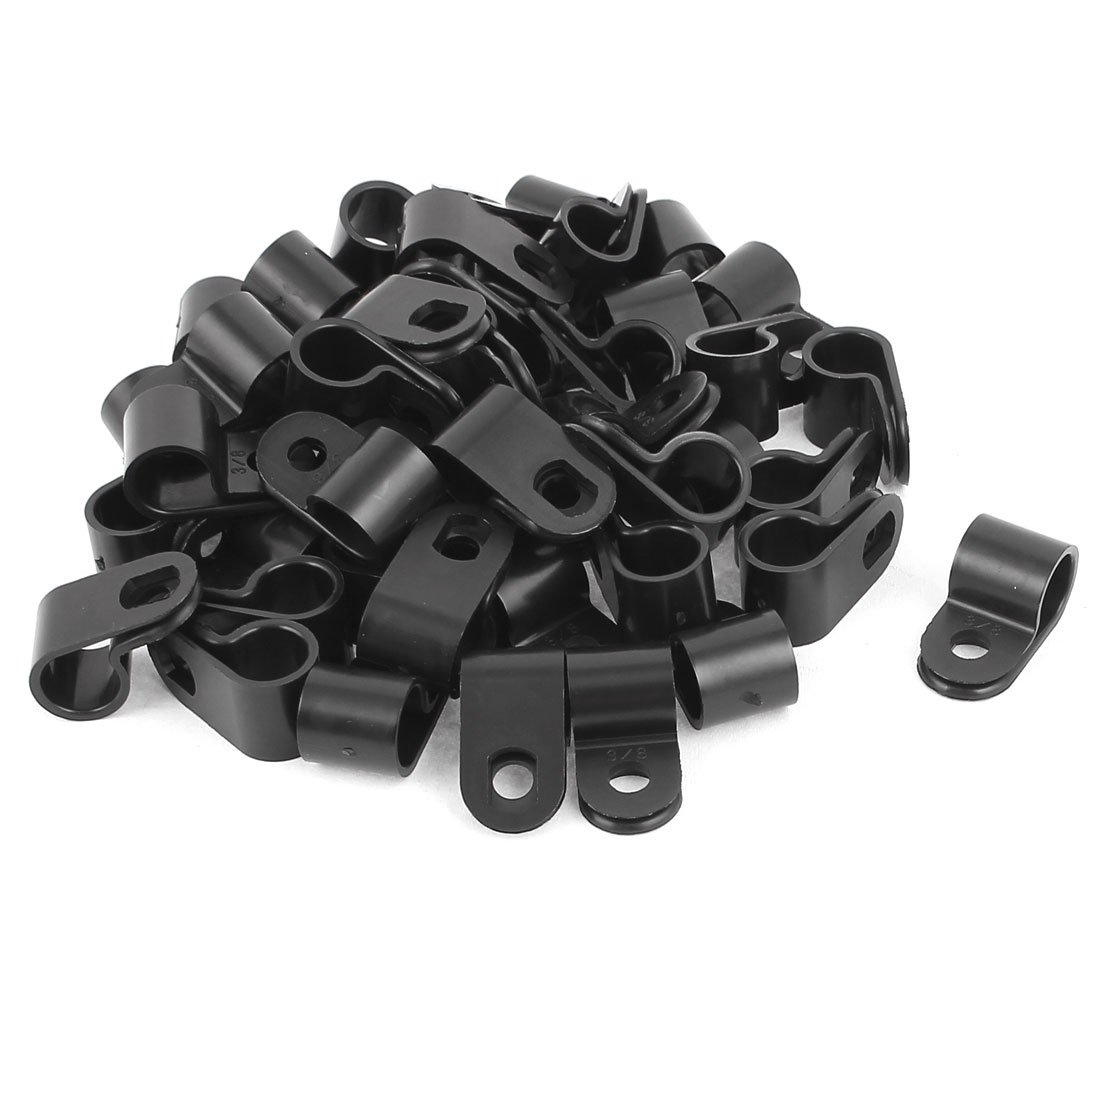 uxcell 30 Pcs Black Plastic R Type Cable Clip Clamp for 12mm Dia Wire Hose